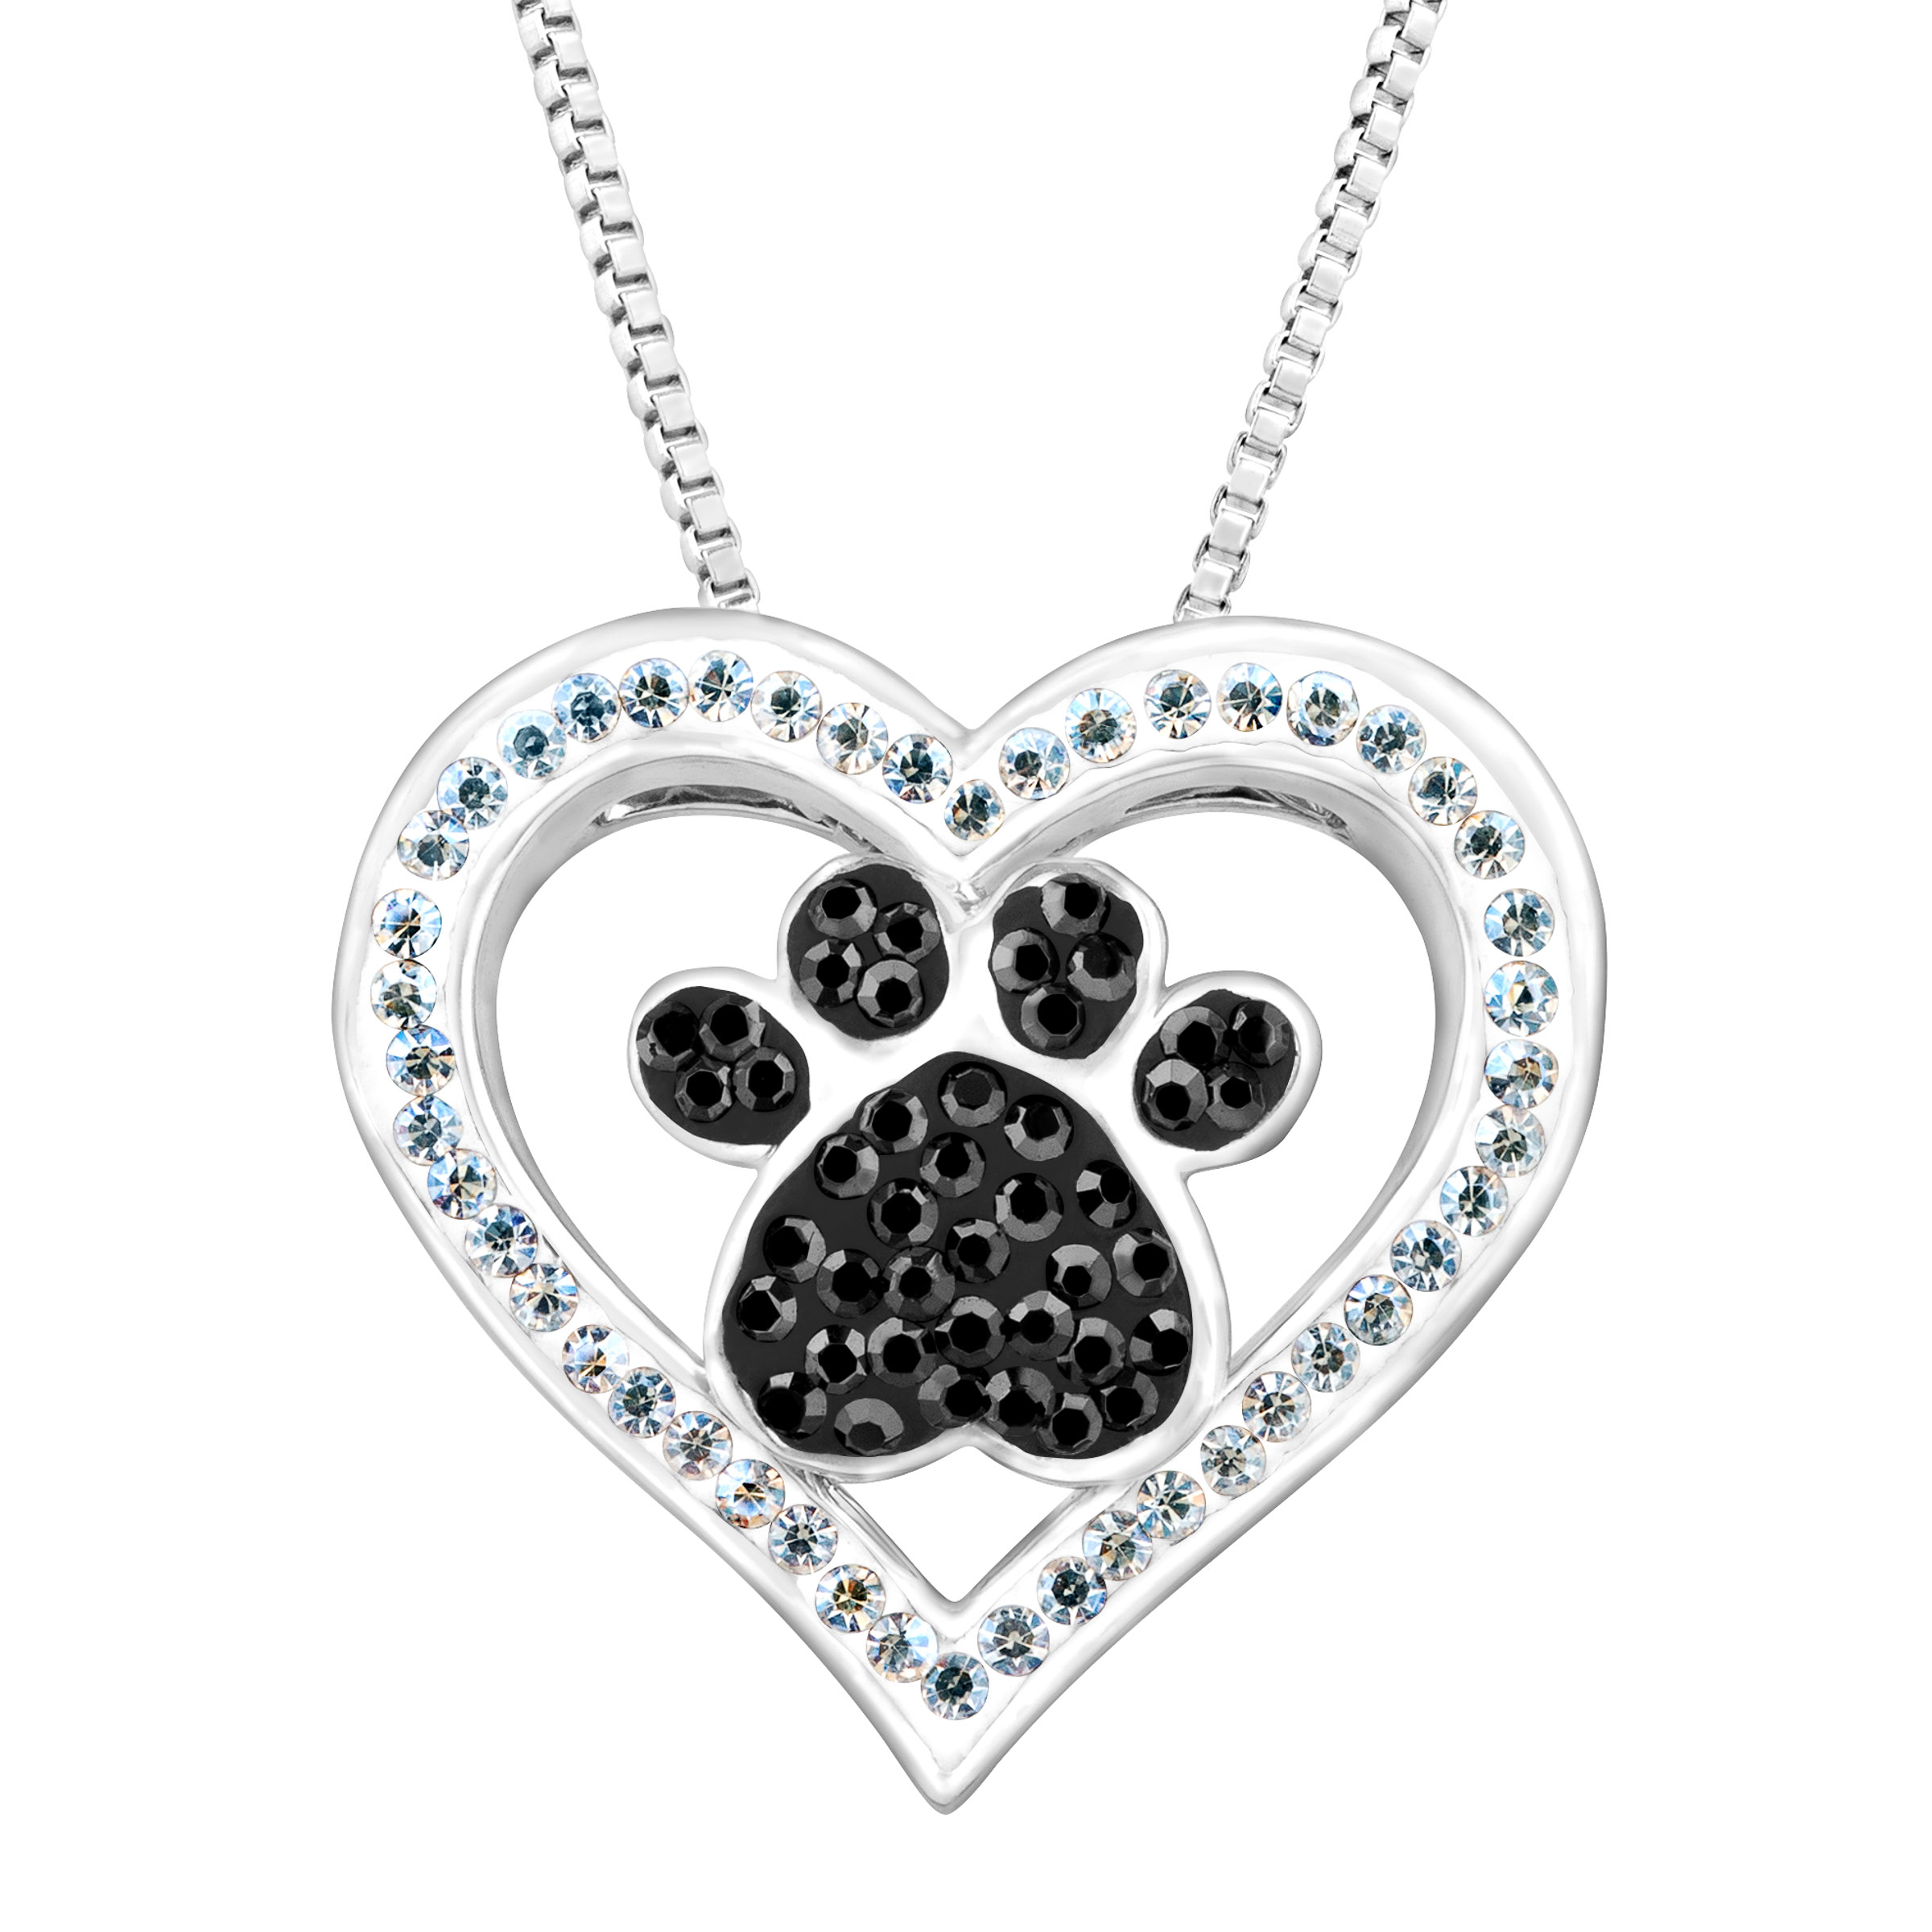 Crystaluxe Paw & Heart Pendant Necklace with Swarovski Crystals in Sterling Silver-Plated Brass